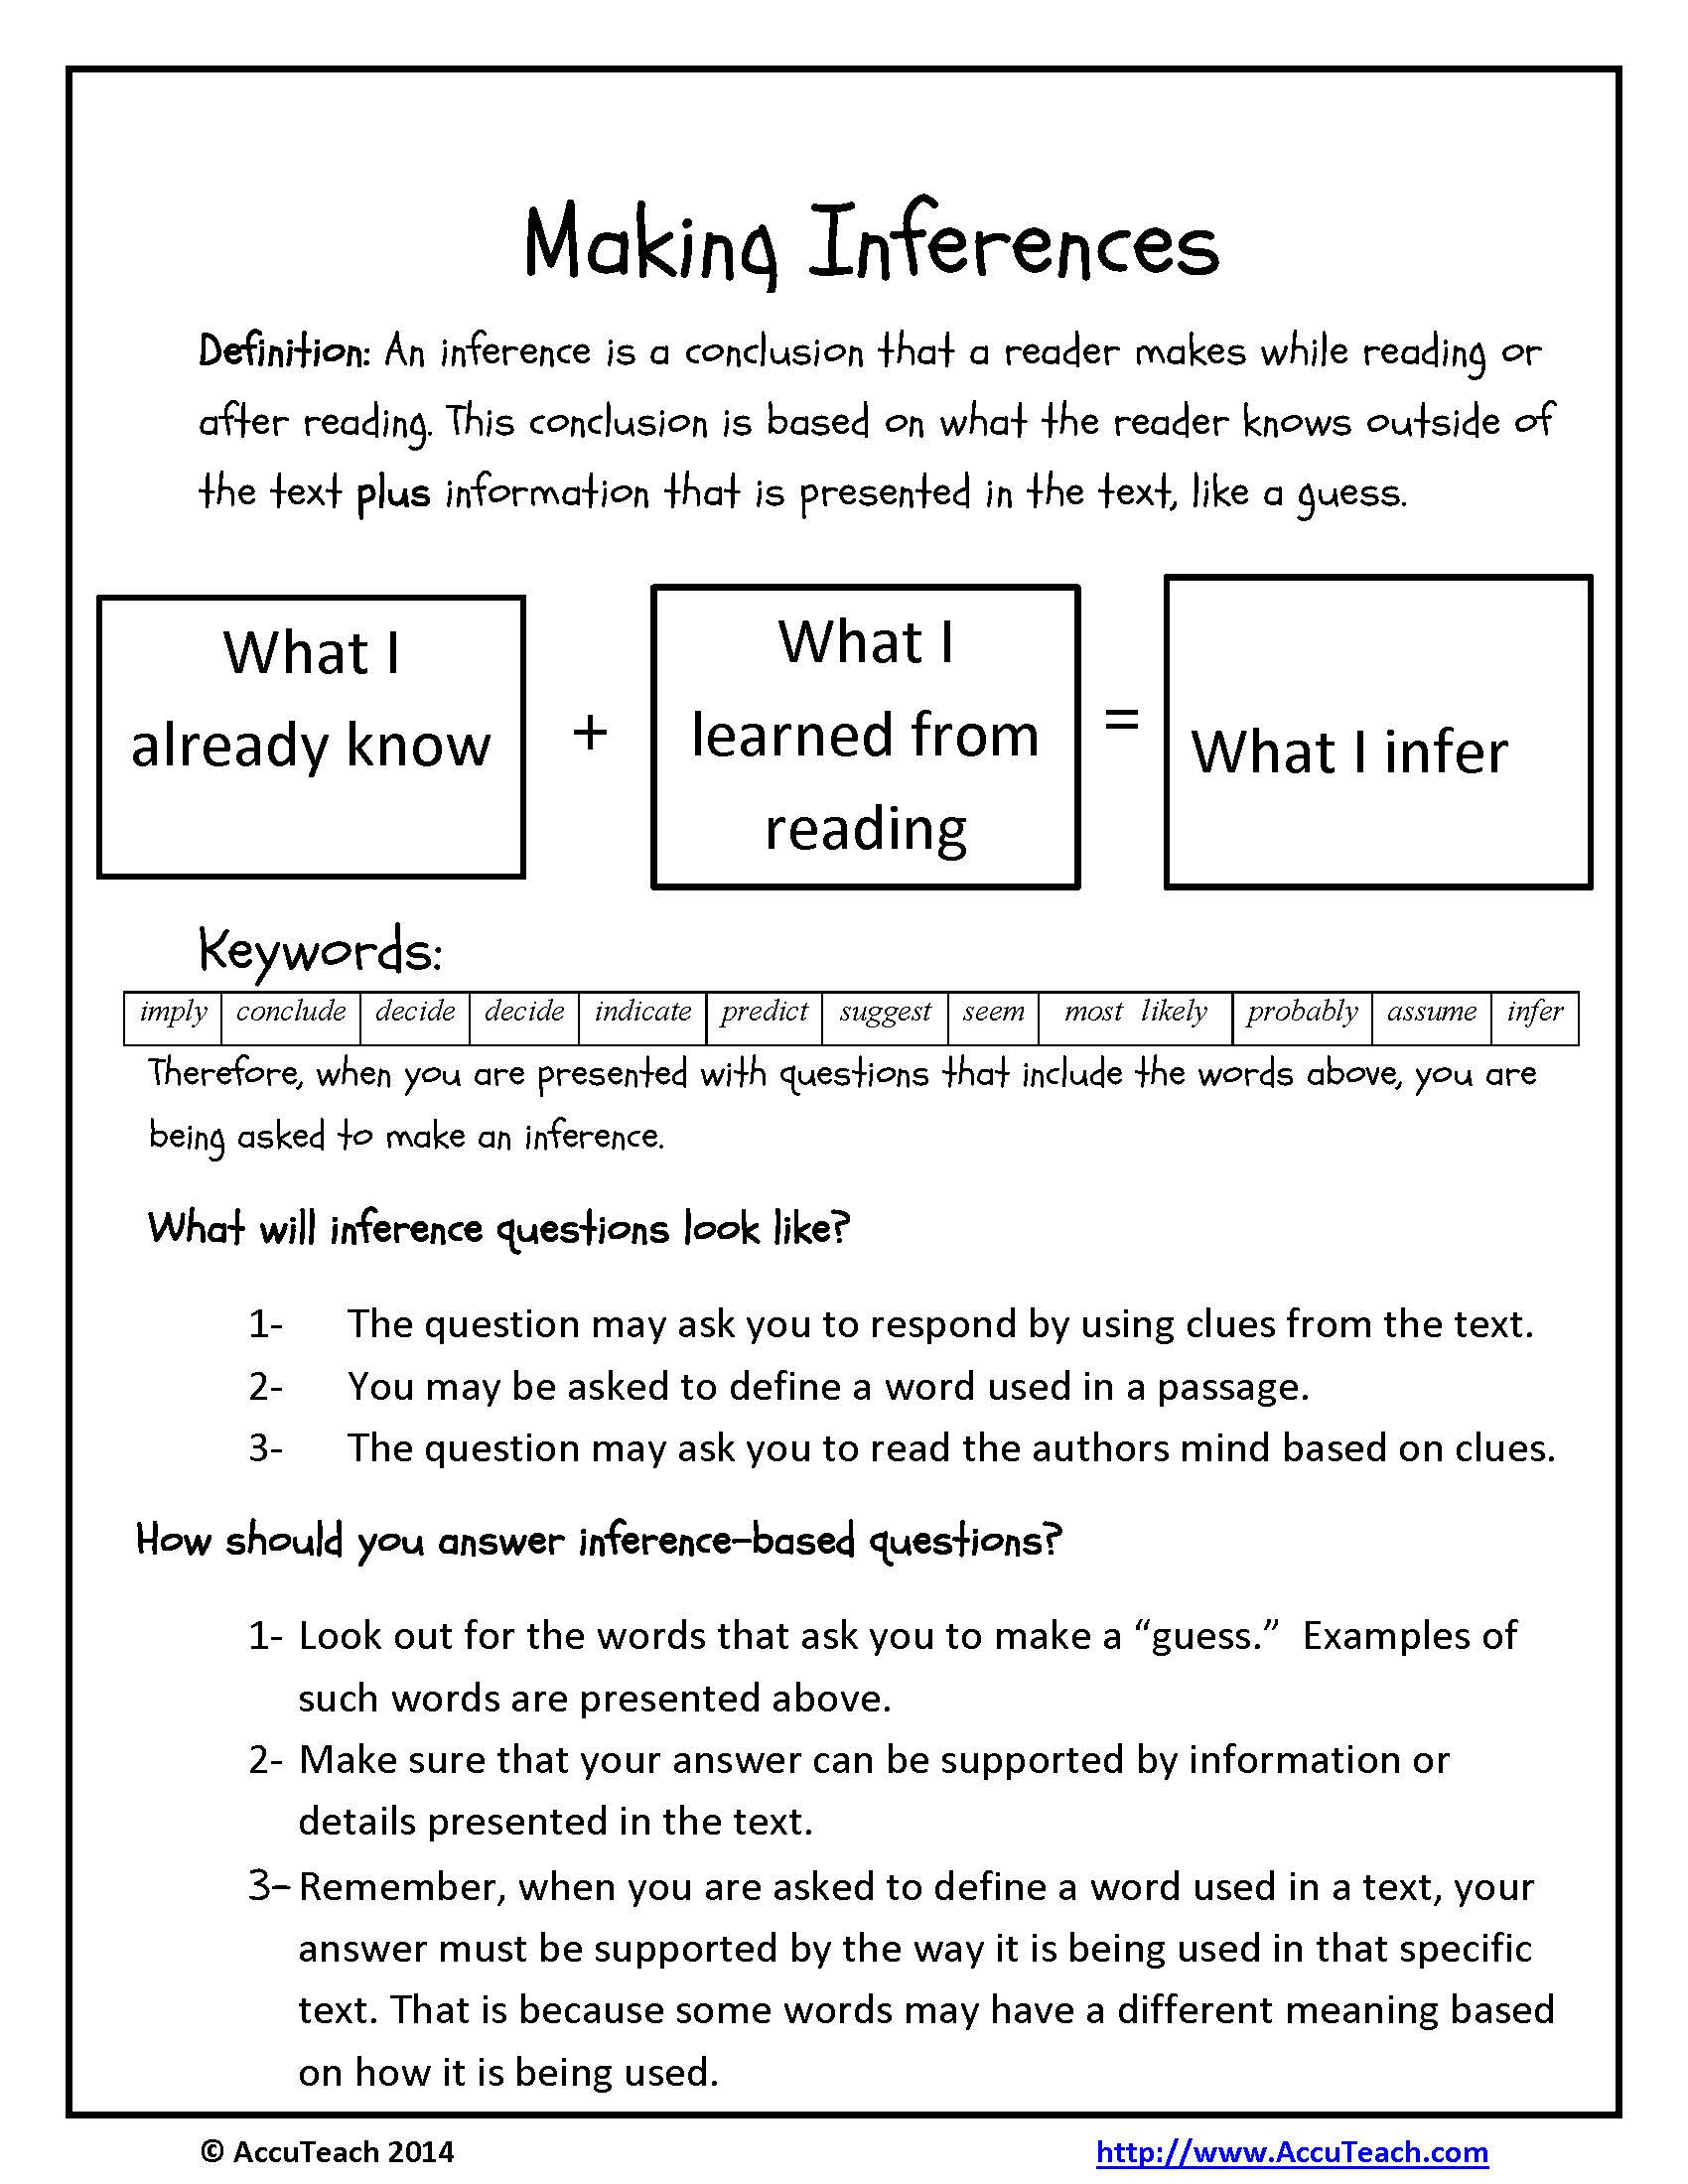 Making Inferences Worksheets 4th Grade Inference Questions Reading Prehension